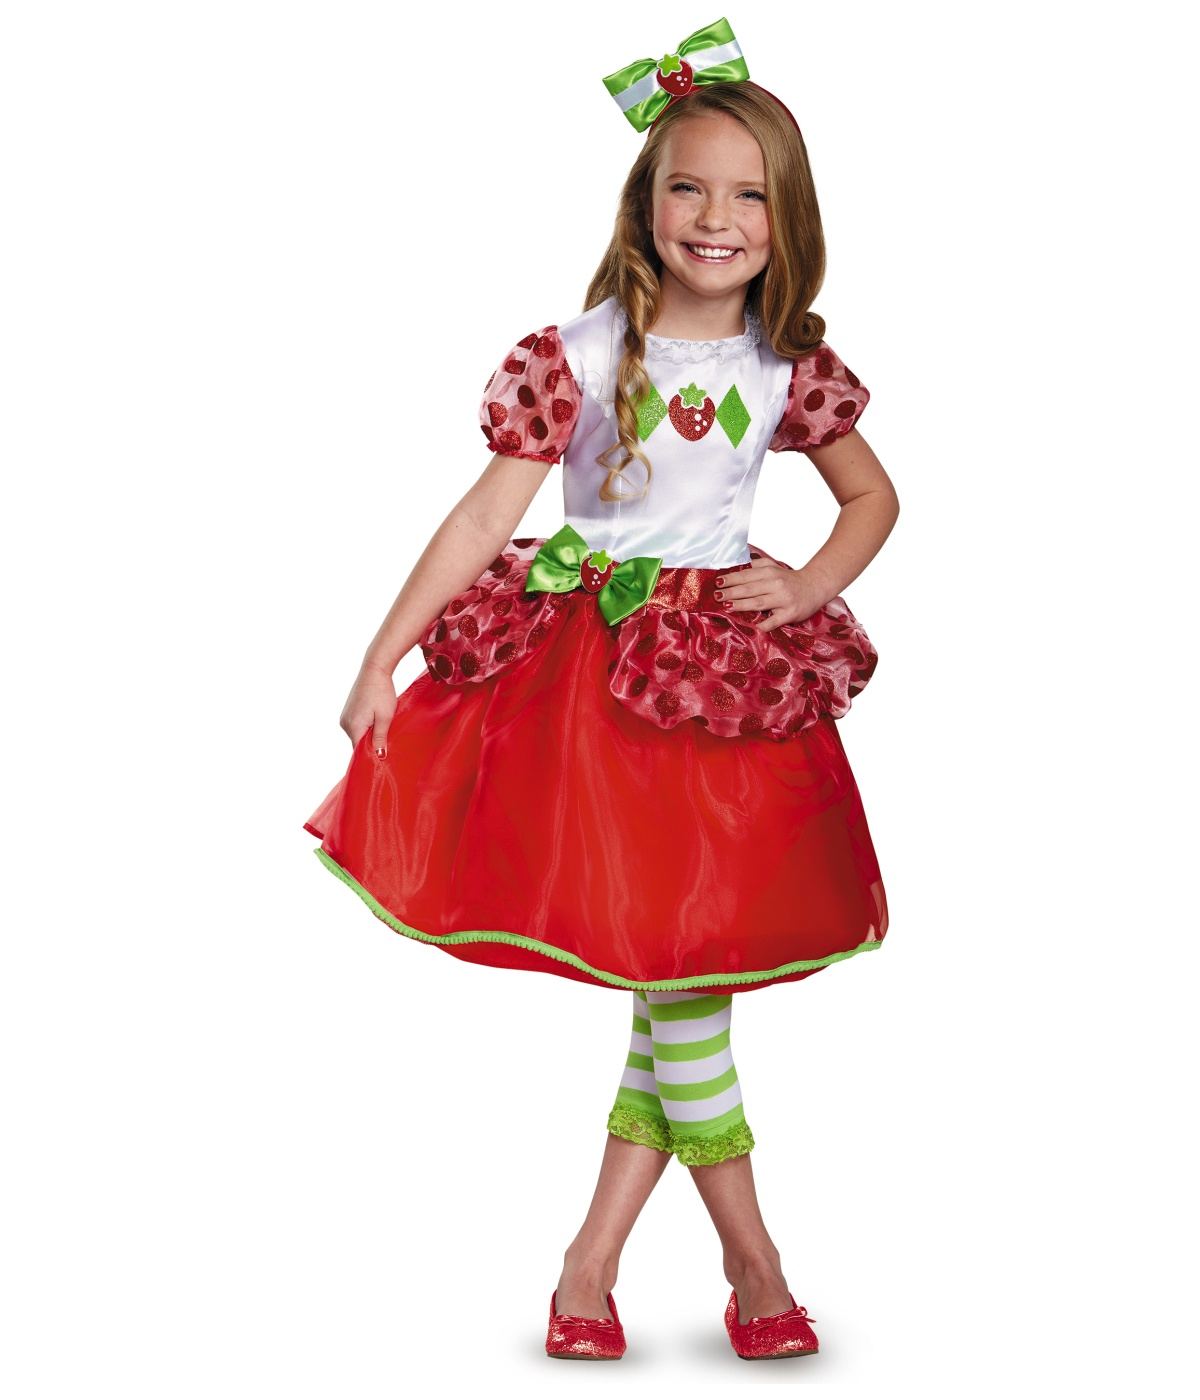 78321b160 Strawberry Shortcake Girls / Toddler Costume - New Arrivals